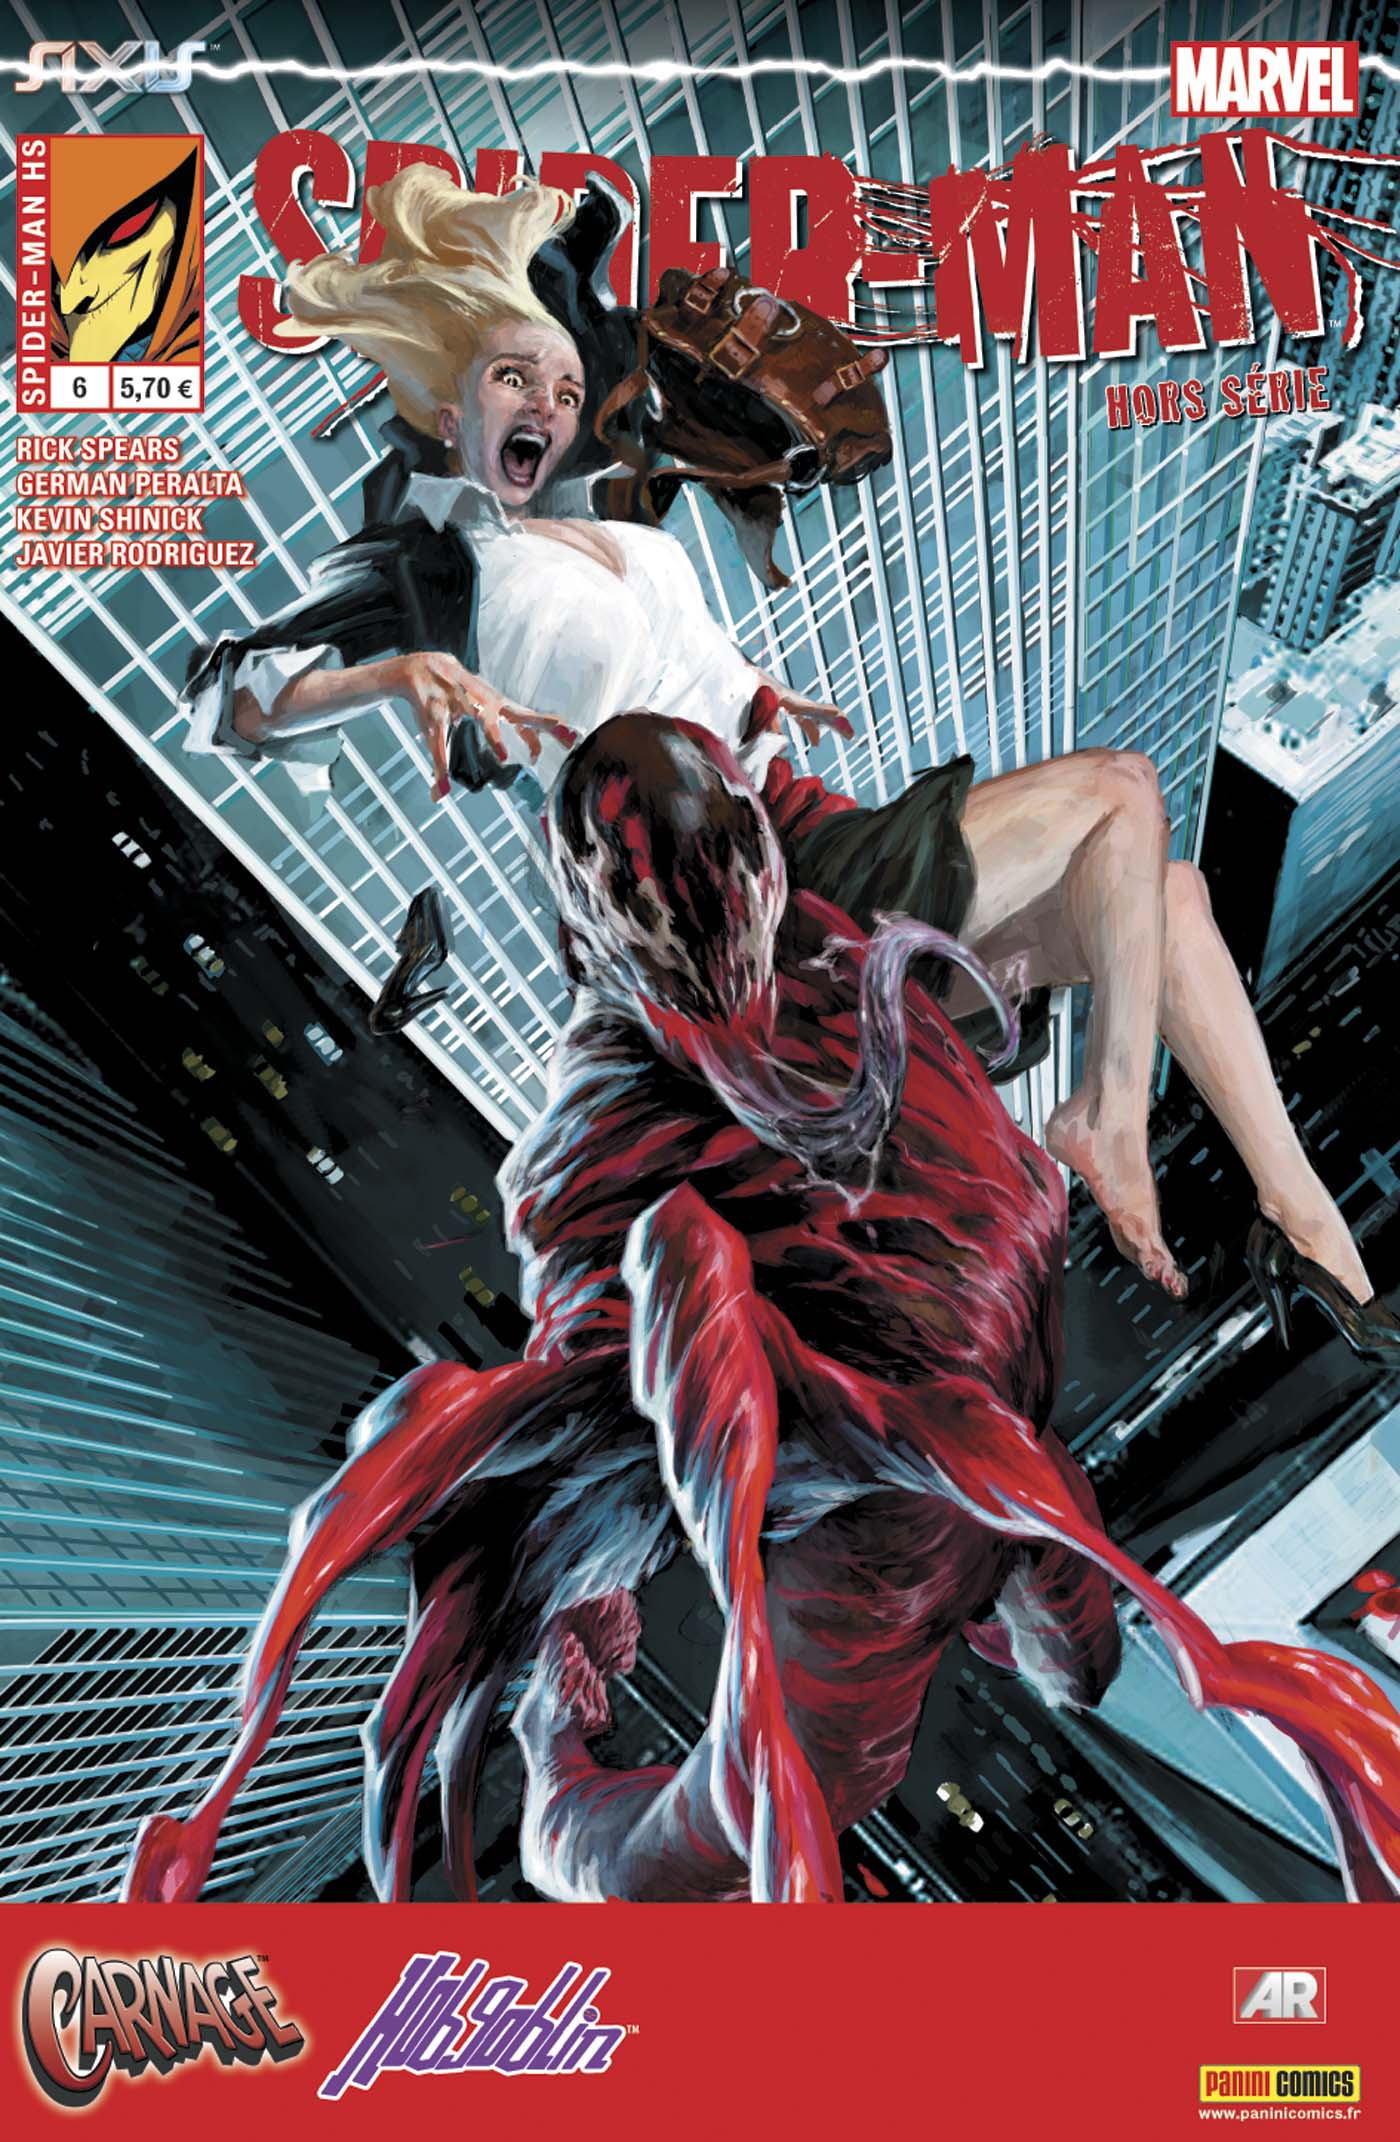 SPIDER-MAN HORS SÉRIE 6 : AXIS - CARNAGE & LE SUPER-BOUFFON